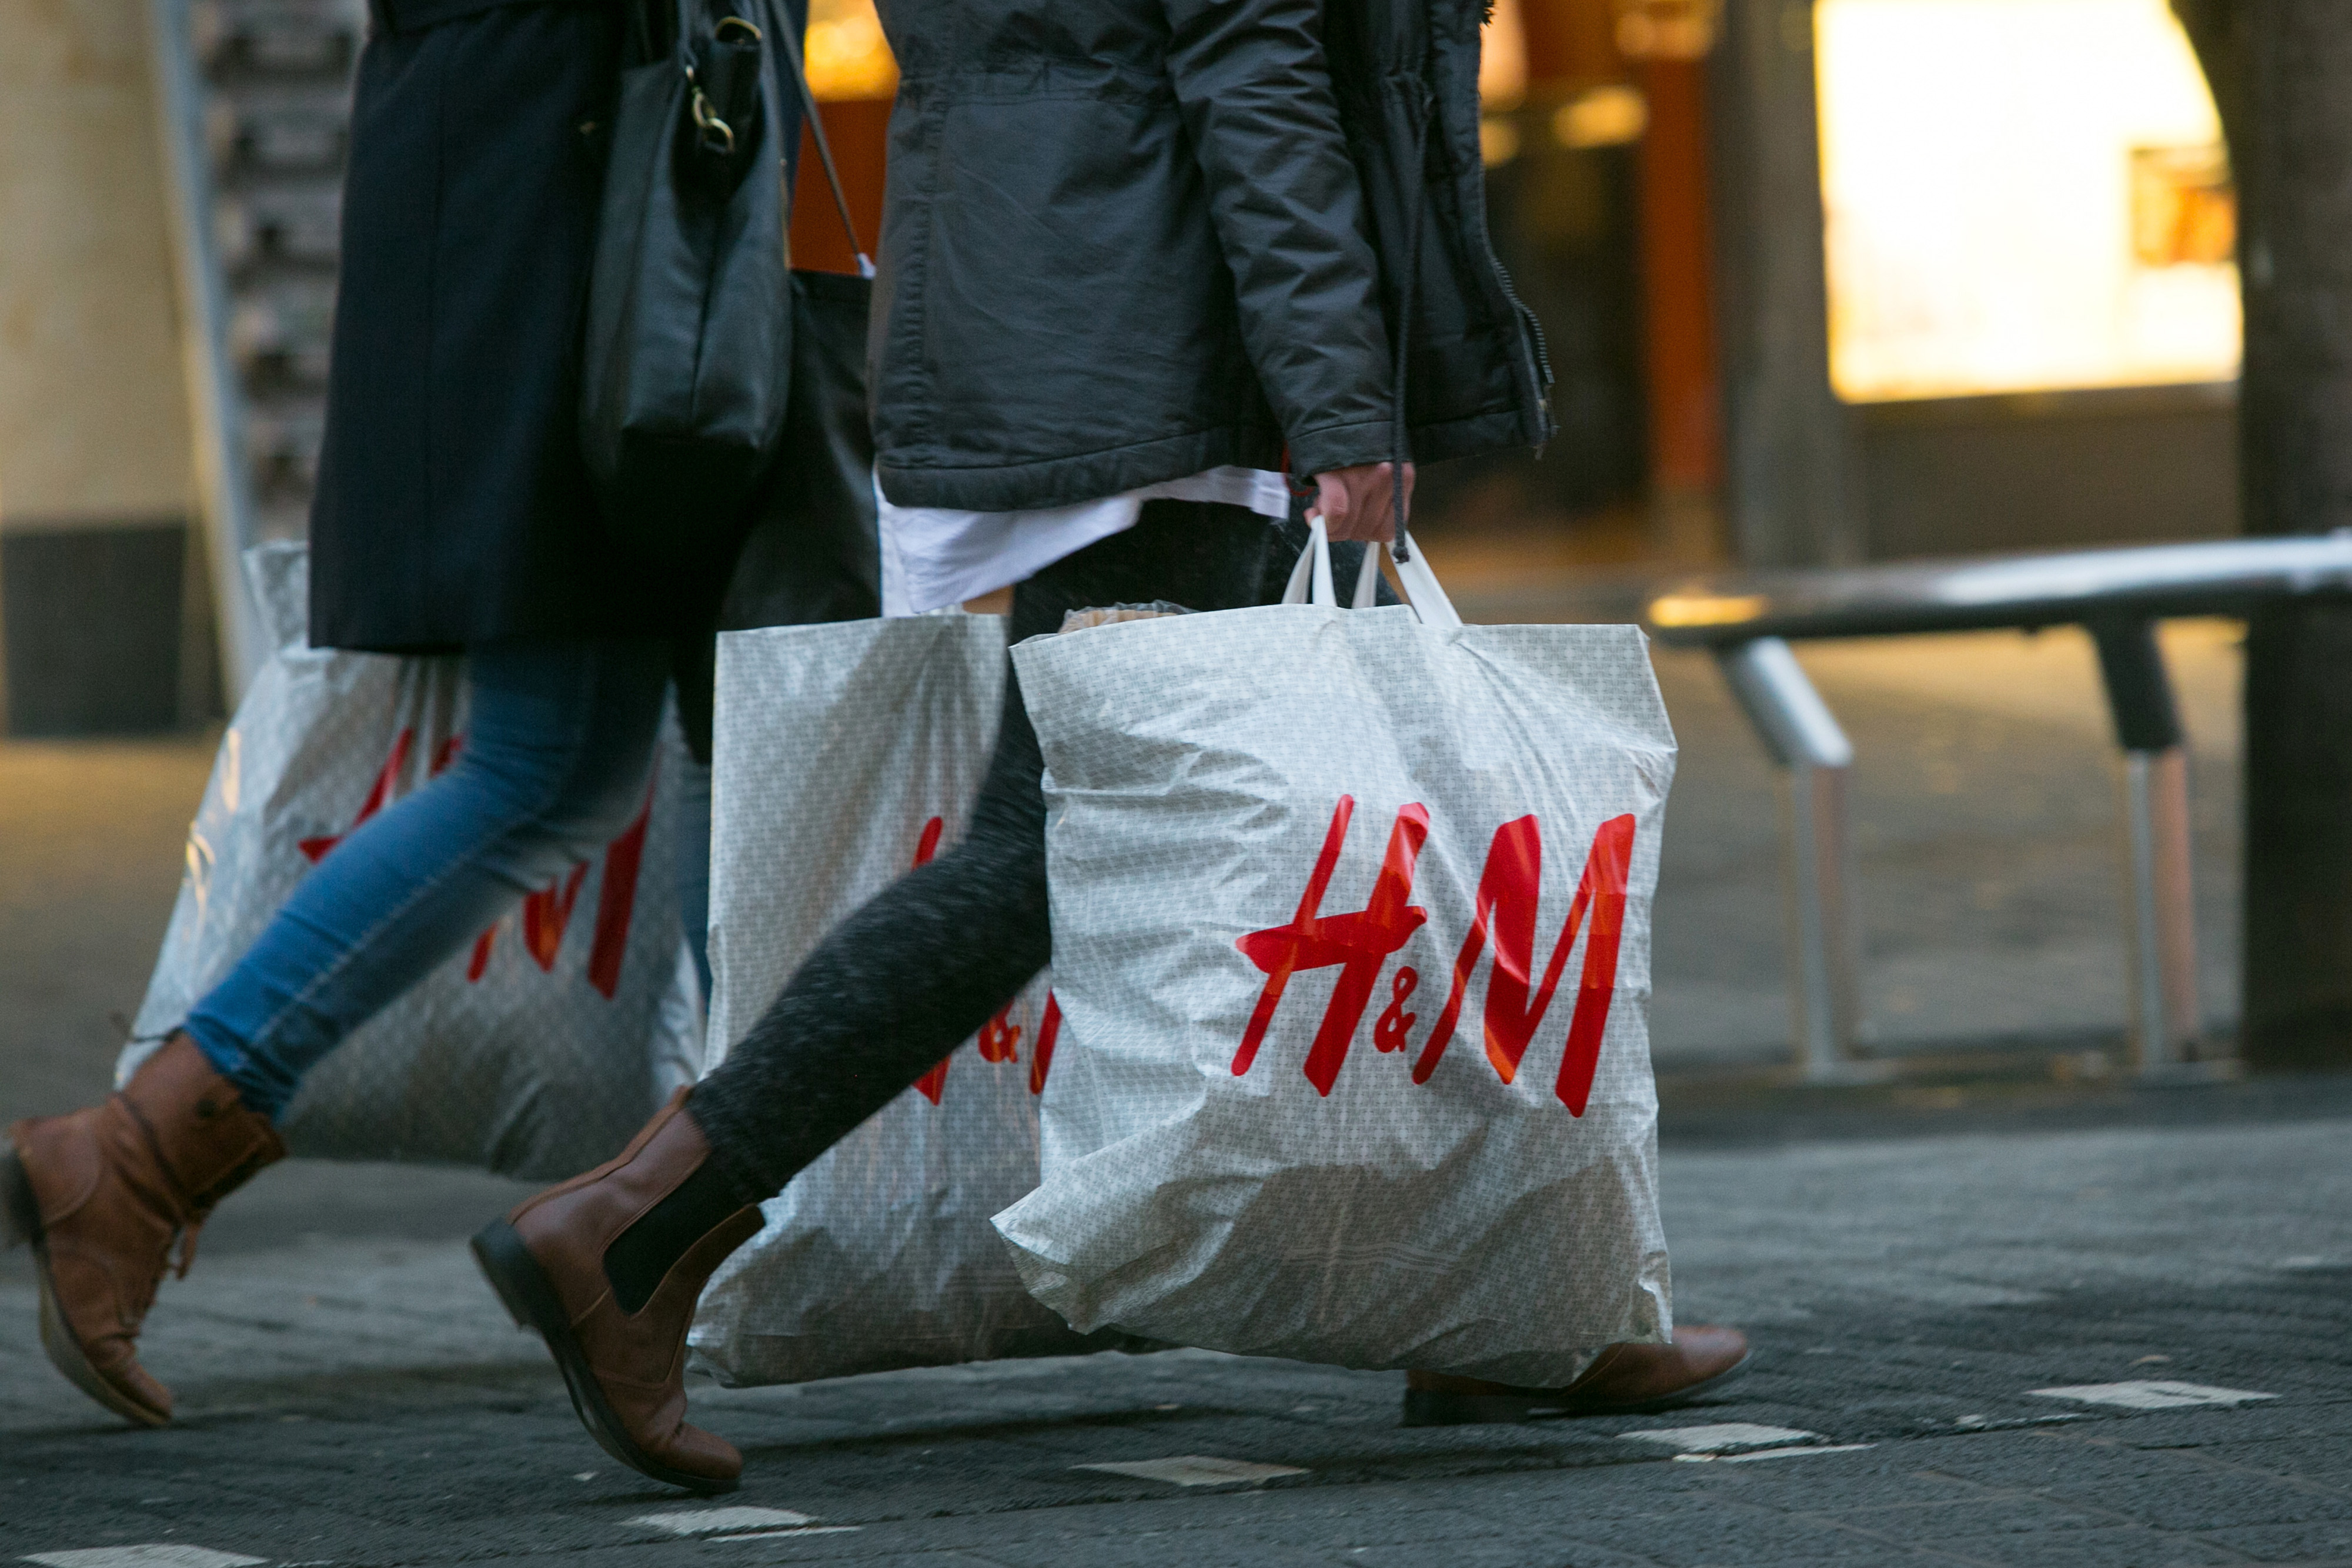 Pedestrians carry Hennes & Mauritz AB (H&M) branded shopping bags in Mannheim, Germany, on Tuesday, Jan. 20, 2015.